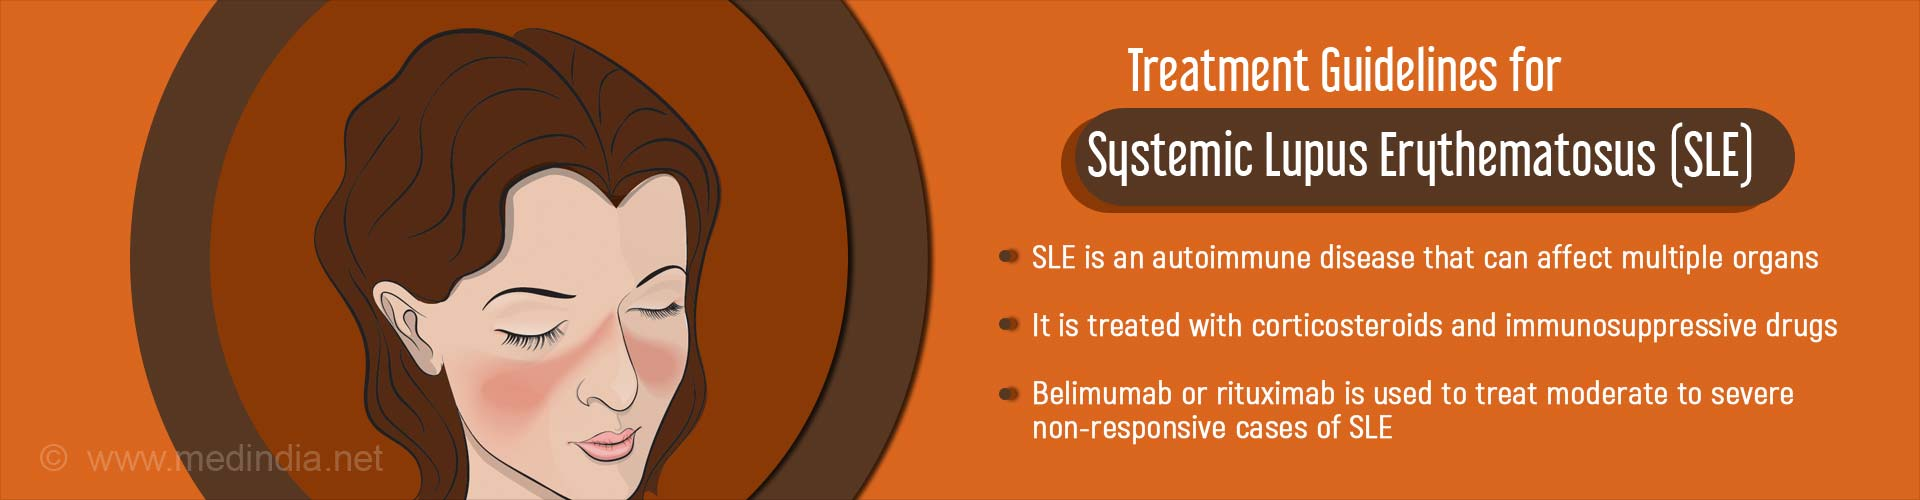 British Society of Rheumatology Publishes Systemic Lupus Erythematosus (SLE) Treatment Guidelines